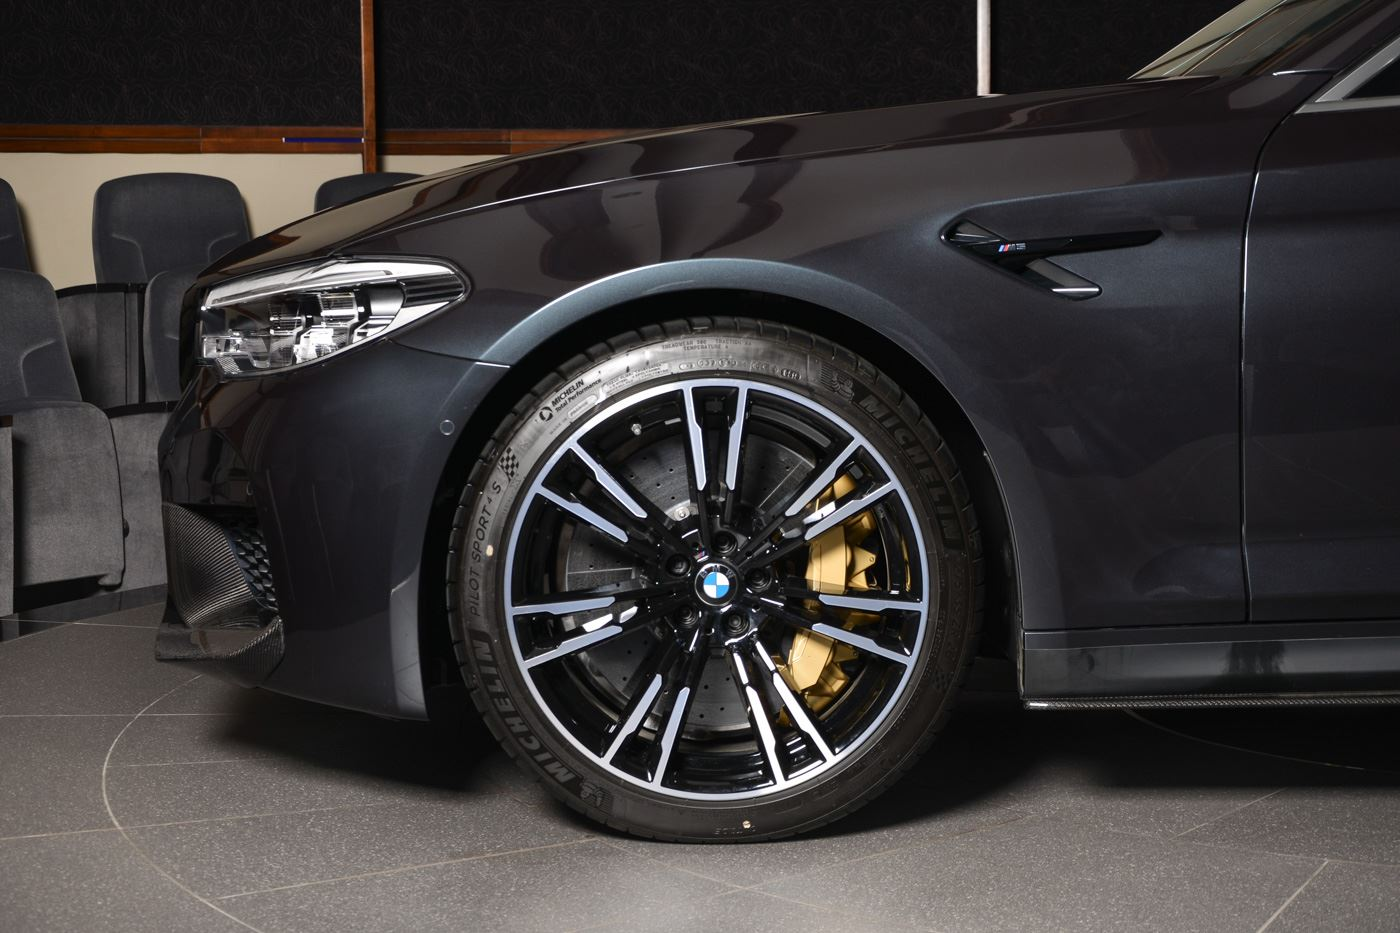 M2 M4 M5 Singapore Grey Bmw M5 Loaded With M Performance Parts